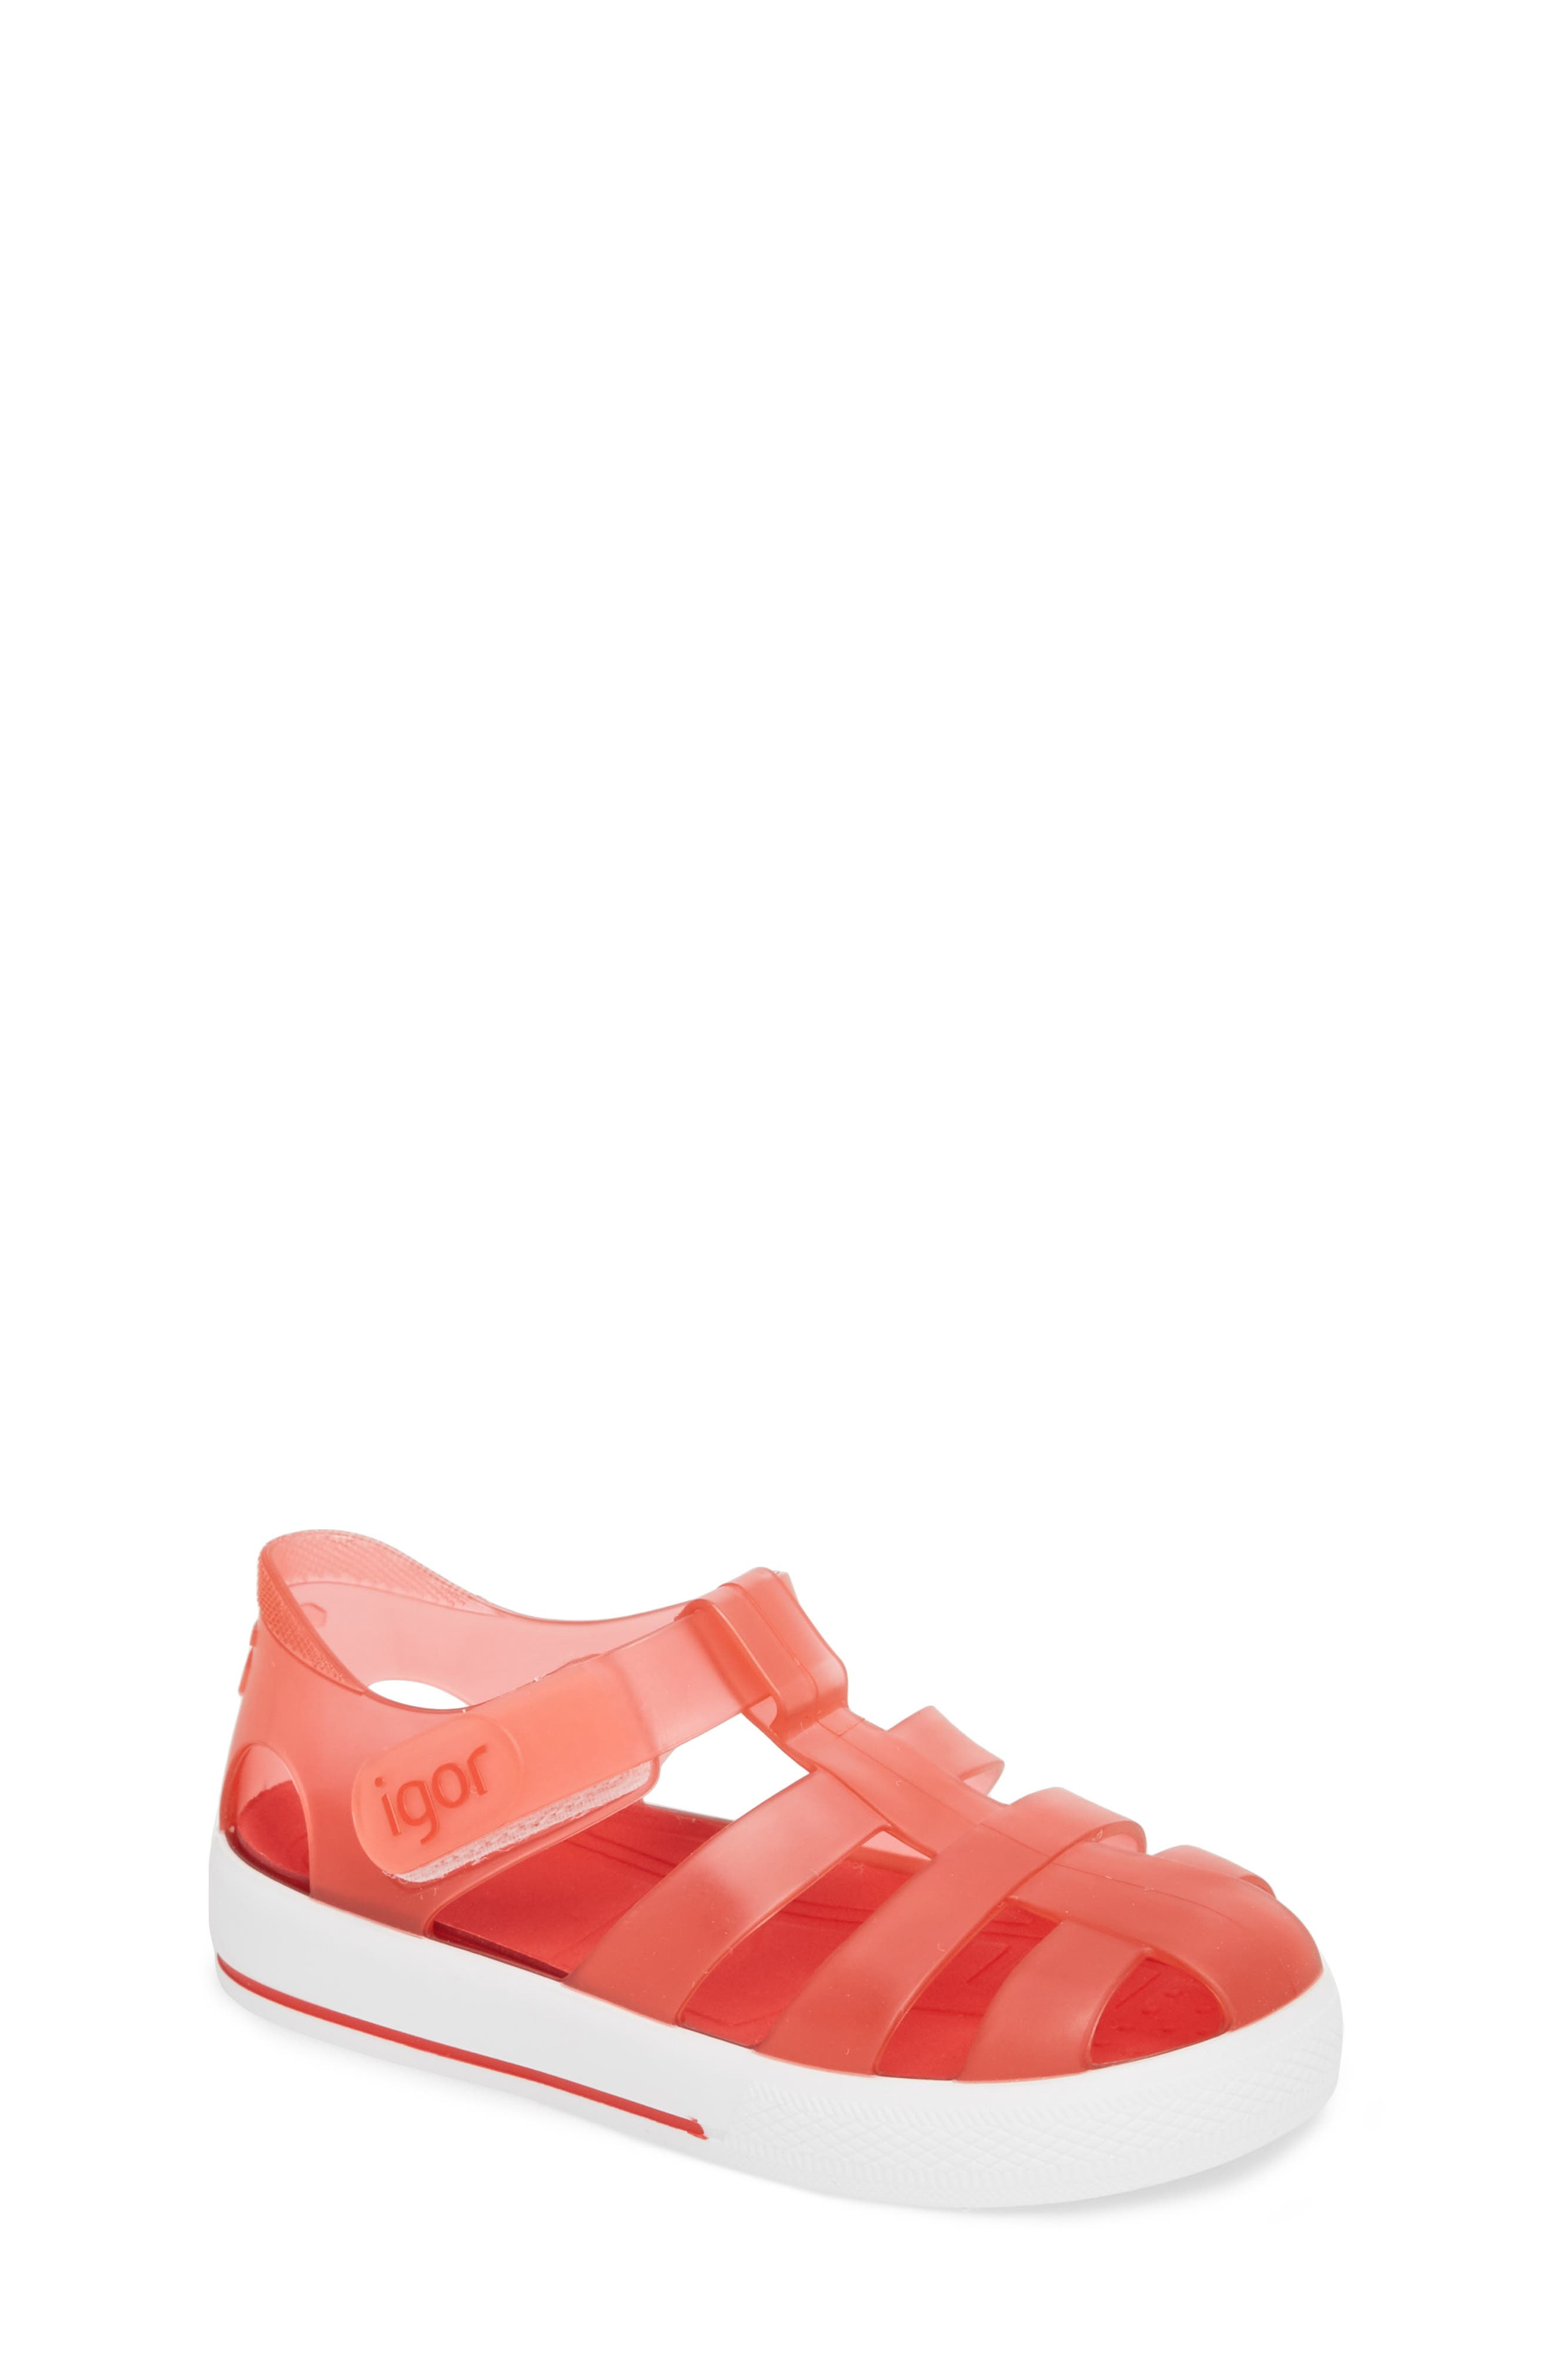 'Star' Glitter Jelly Fisherman Sandal,                             Main thumbnail 1, color,                             Red